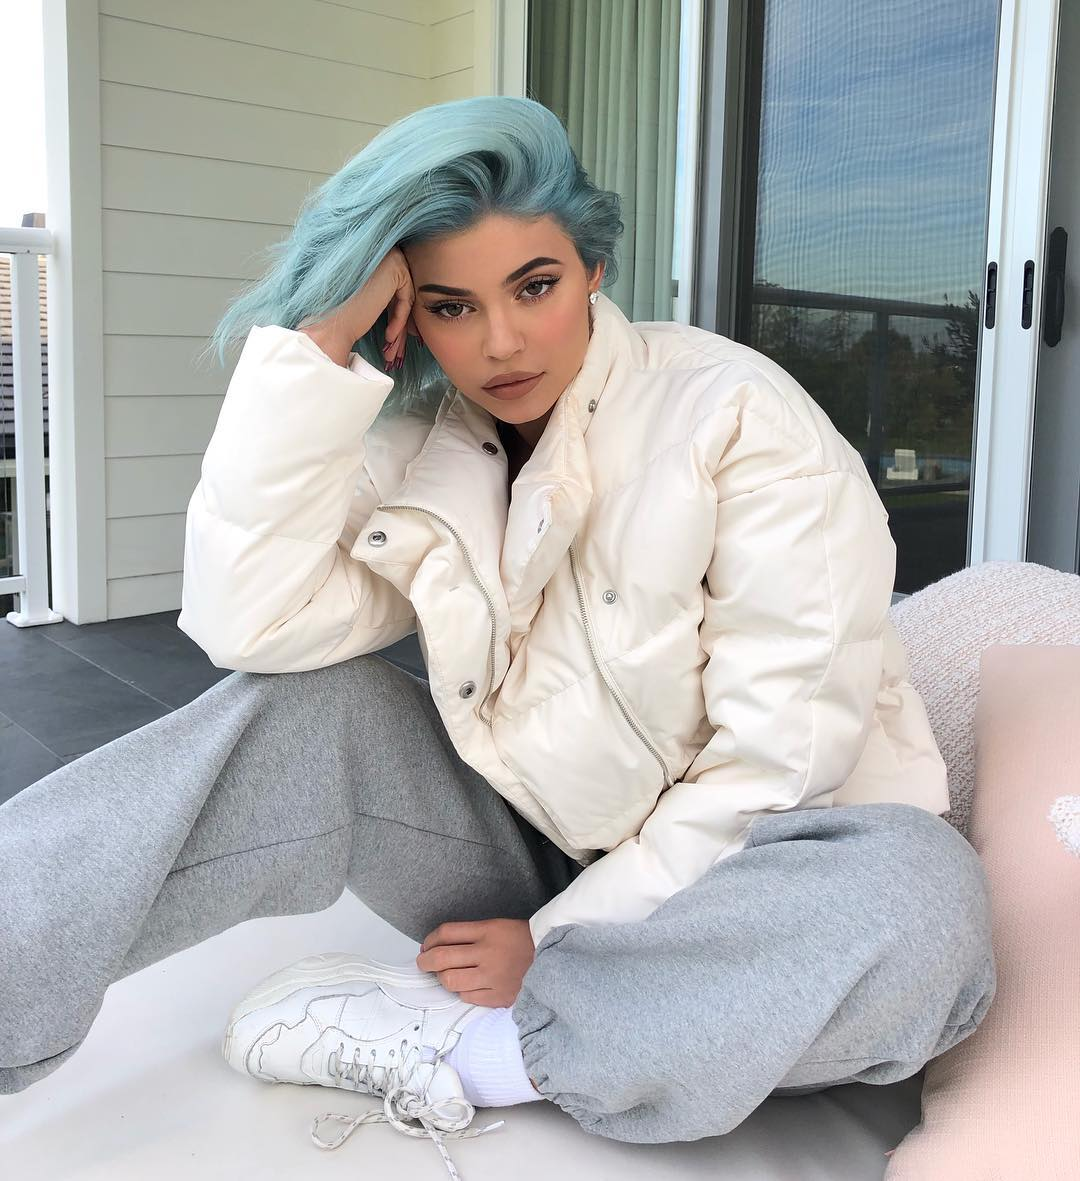 Kylie Jenner is 'too busy to get down' after split from rapper Travis Scott; Details Inside